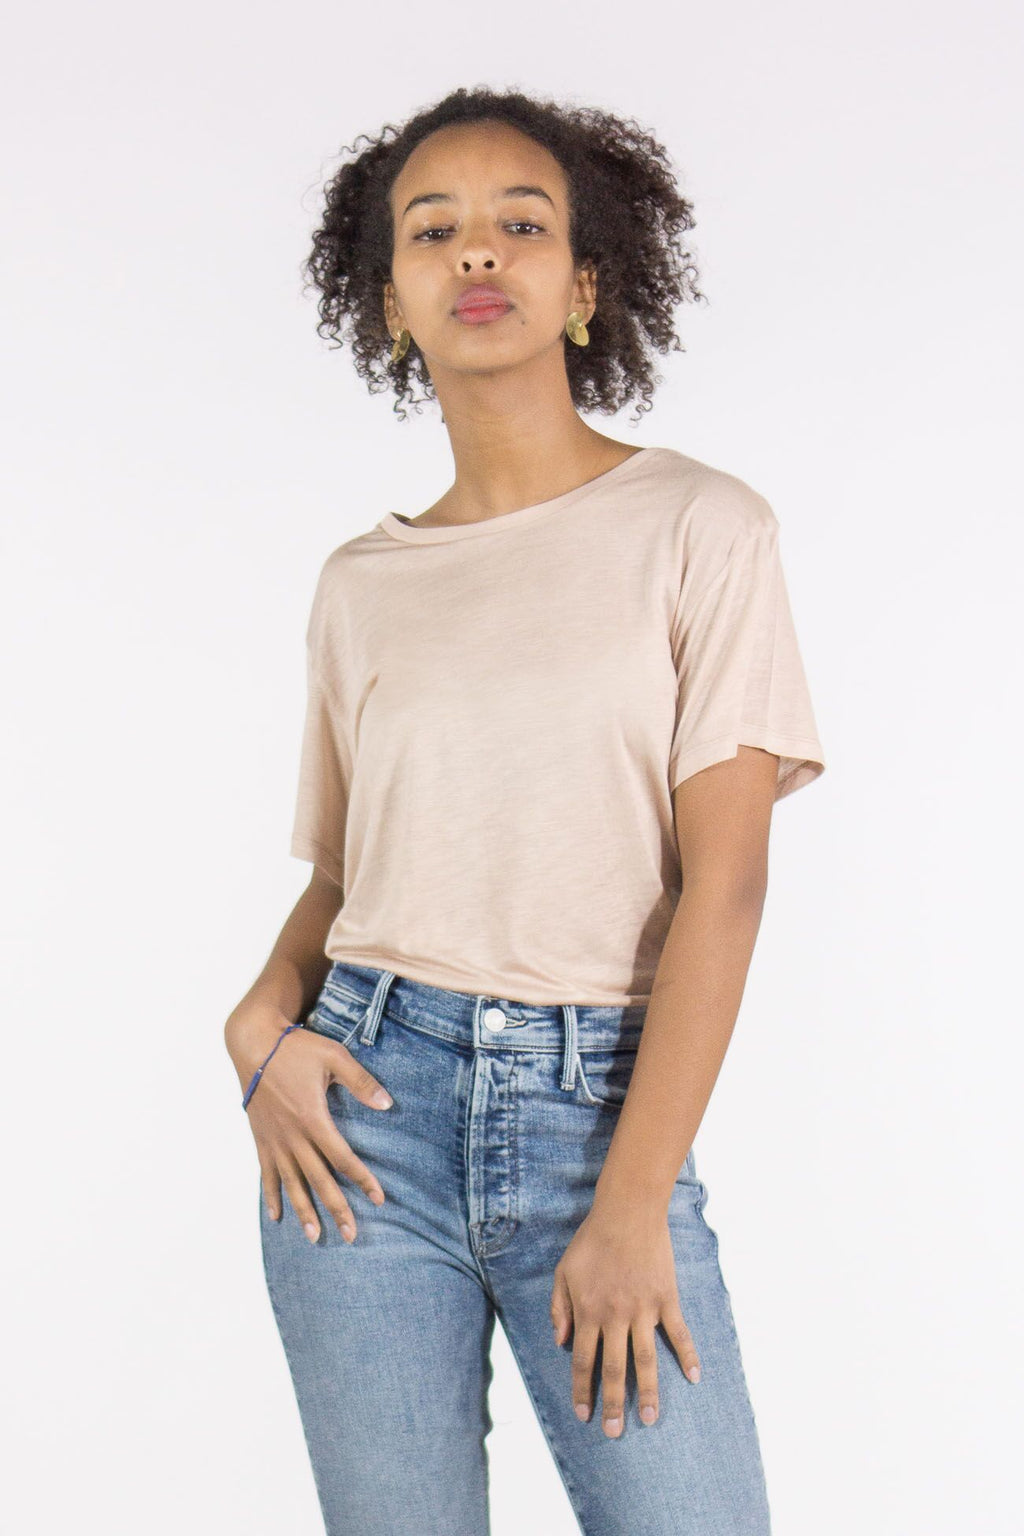 Base Range Bamboo Short Sleeve Tee Shirt in Nude